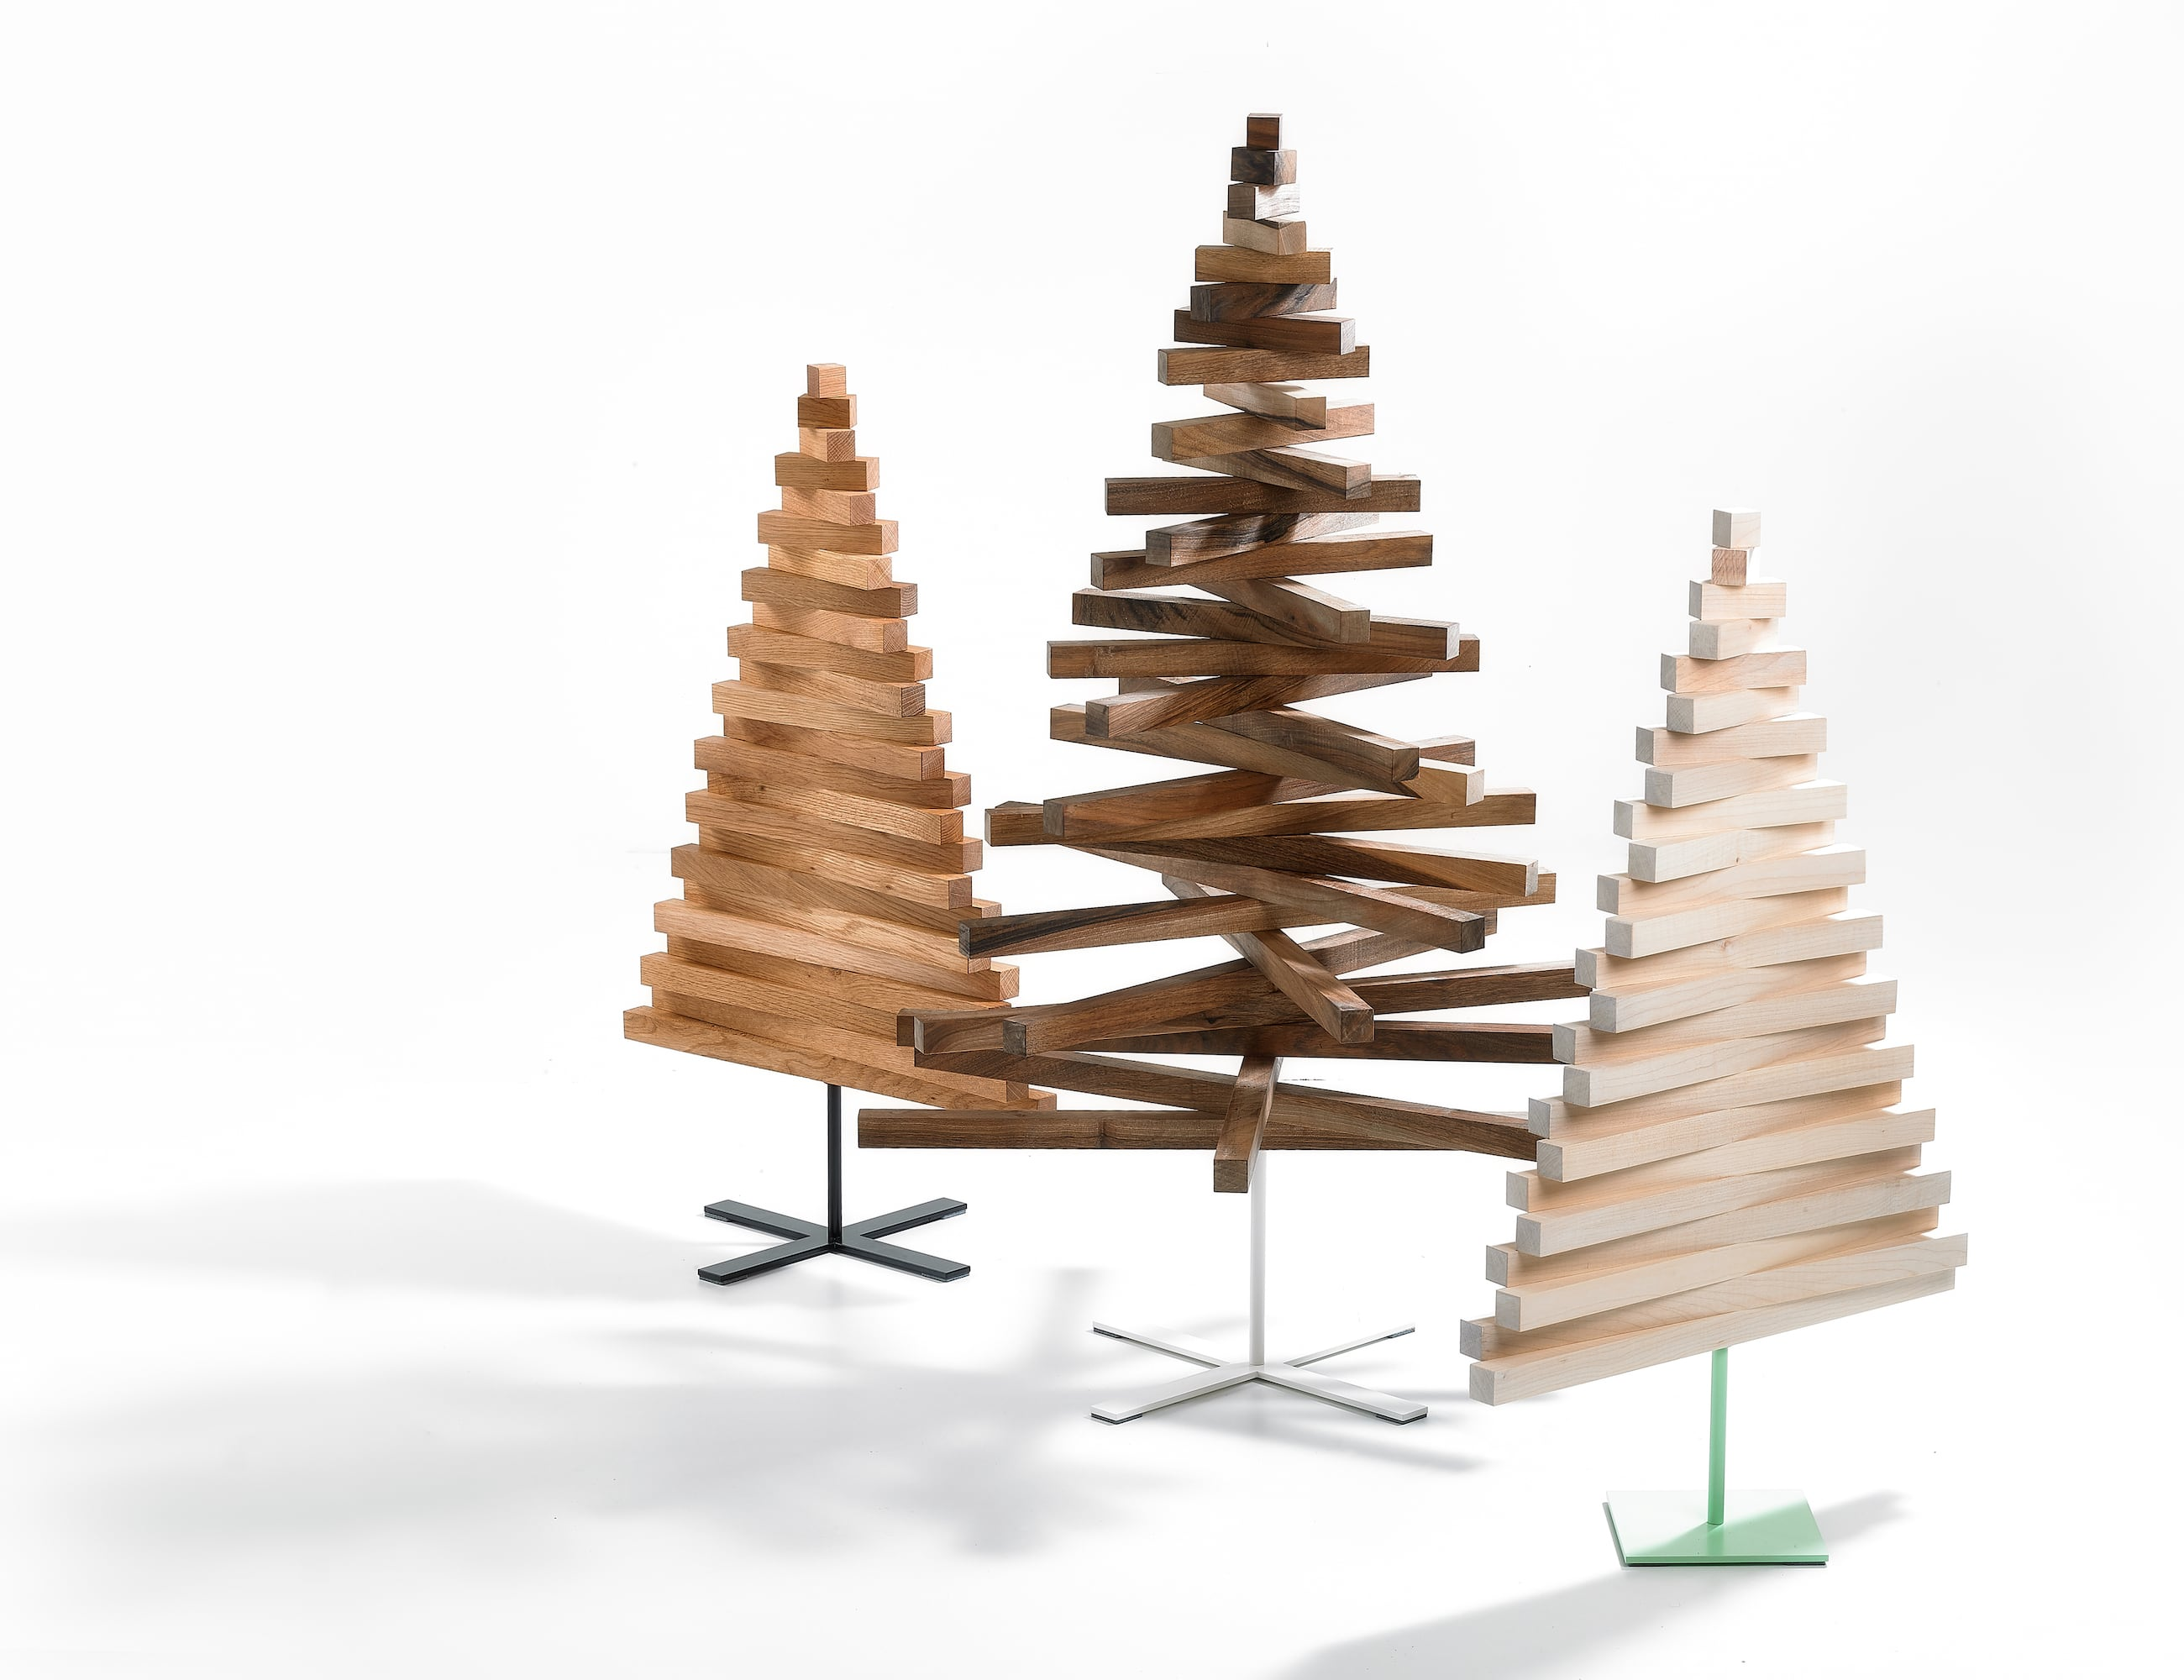 Yelka Minimalist Wooden Christmas Tree » Gadget Flow